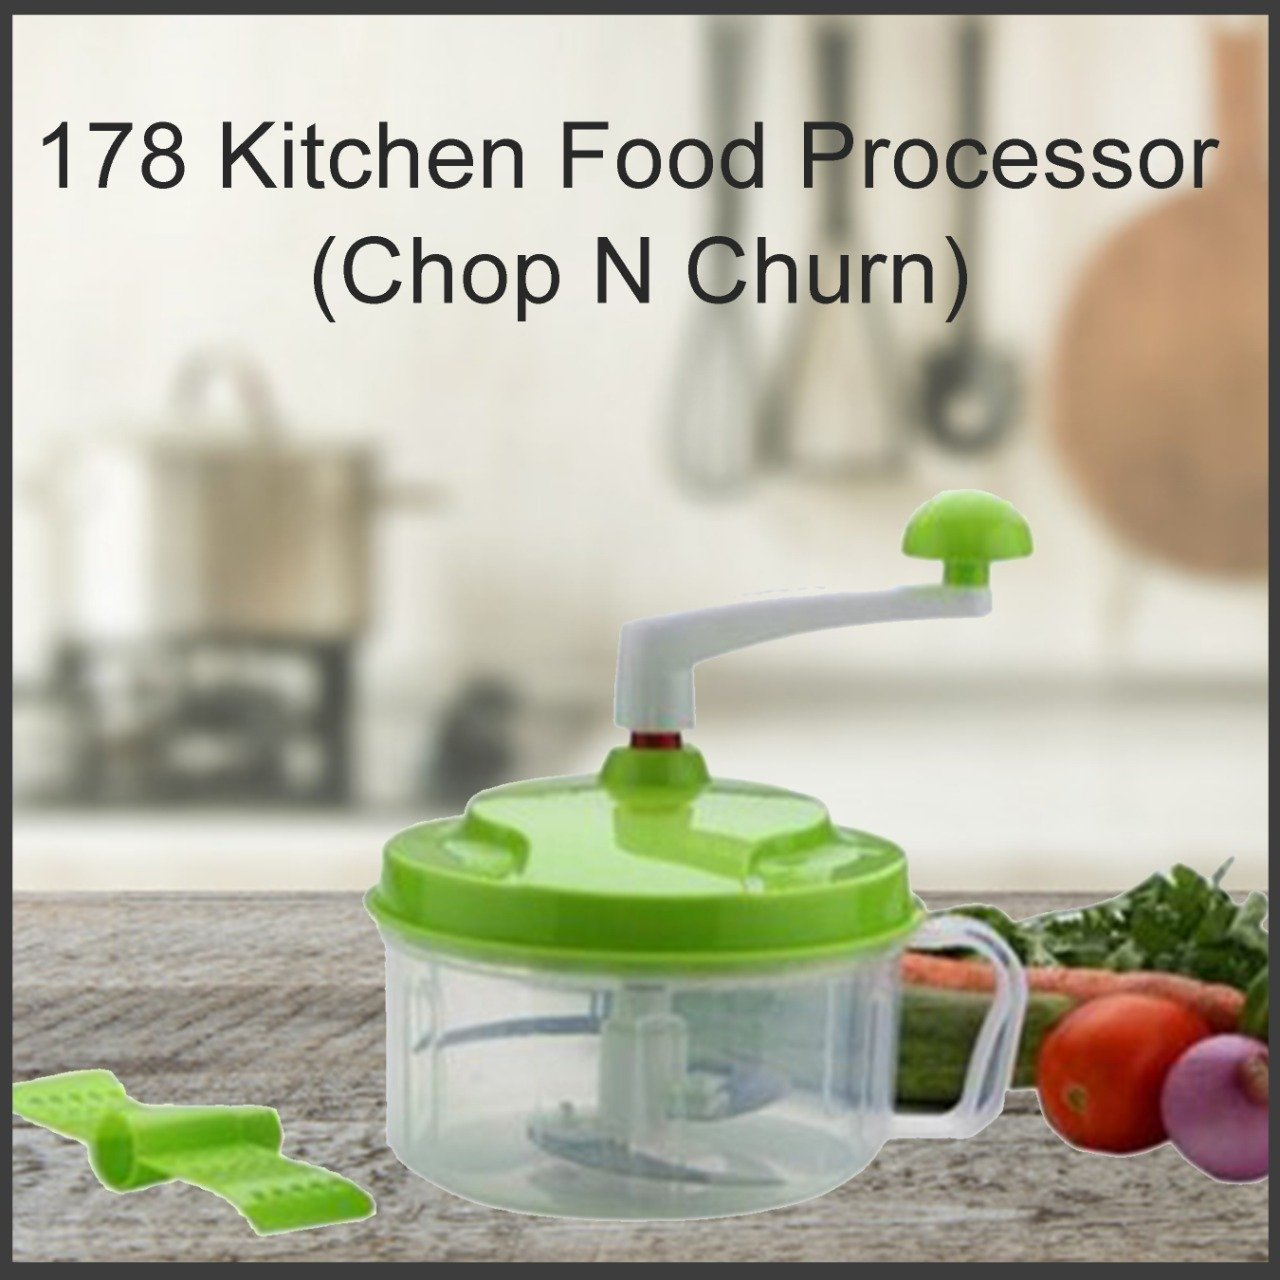 0178 Kitchen Food Processor (Chop N Churn)